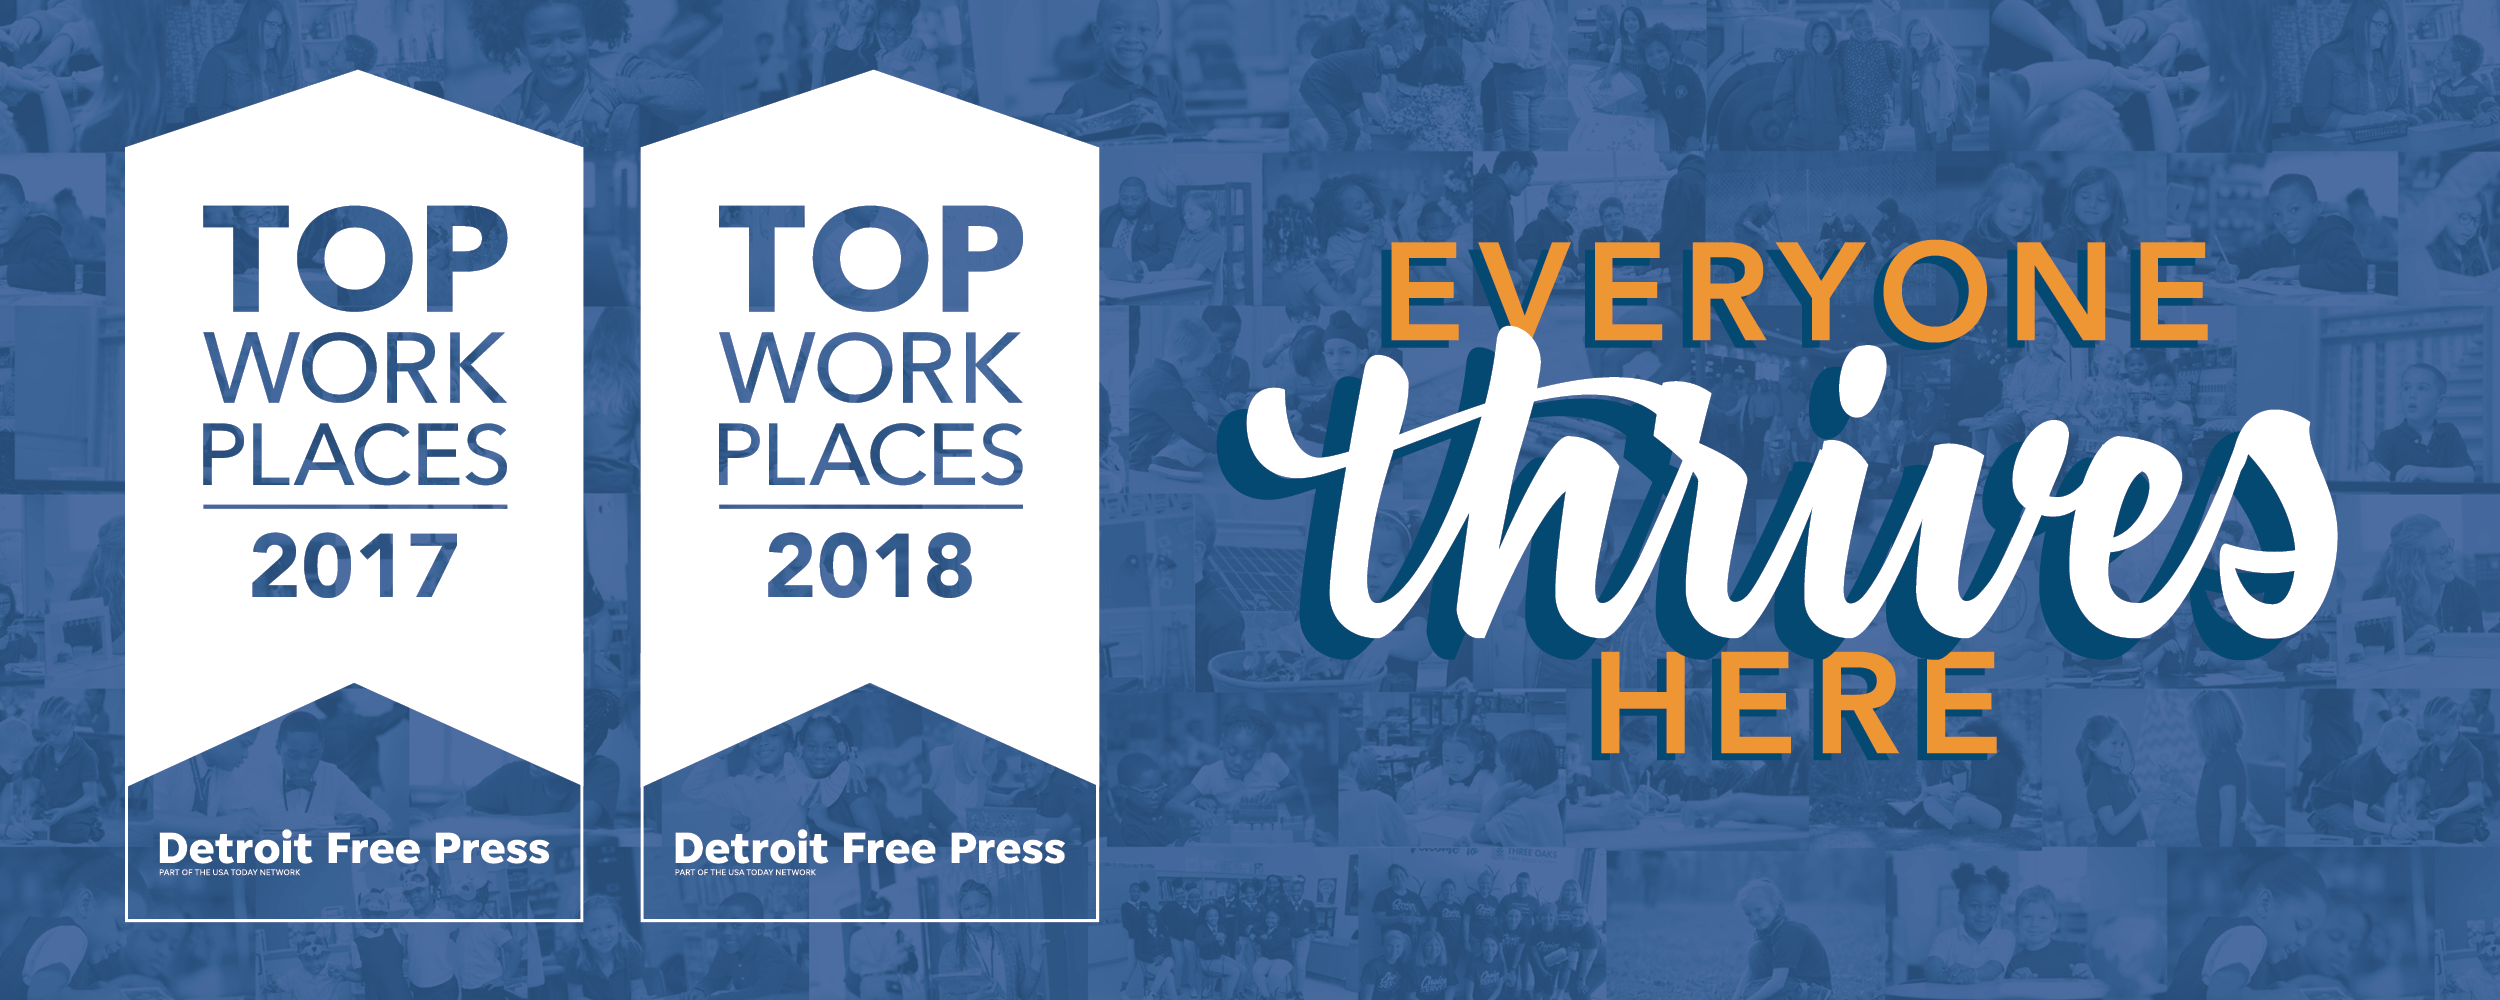 Top Workplaces Banner Image